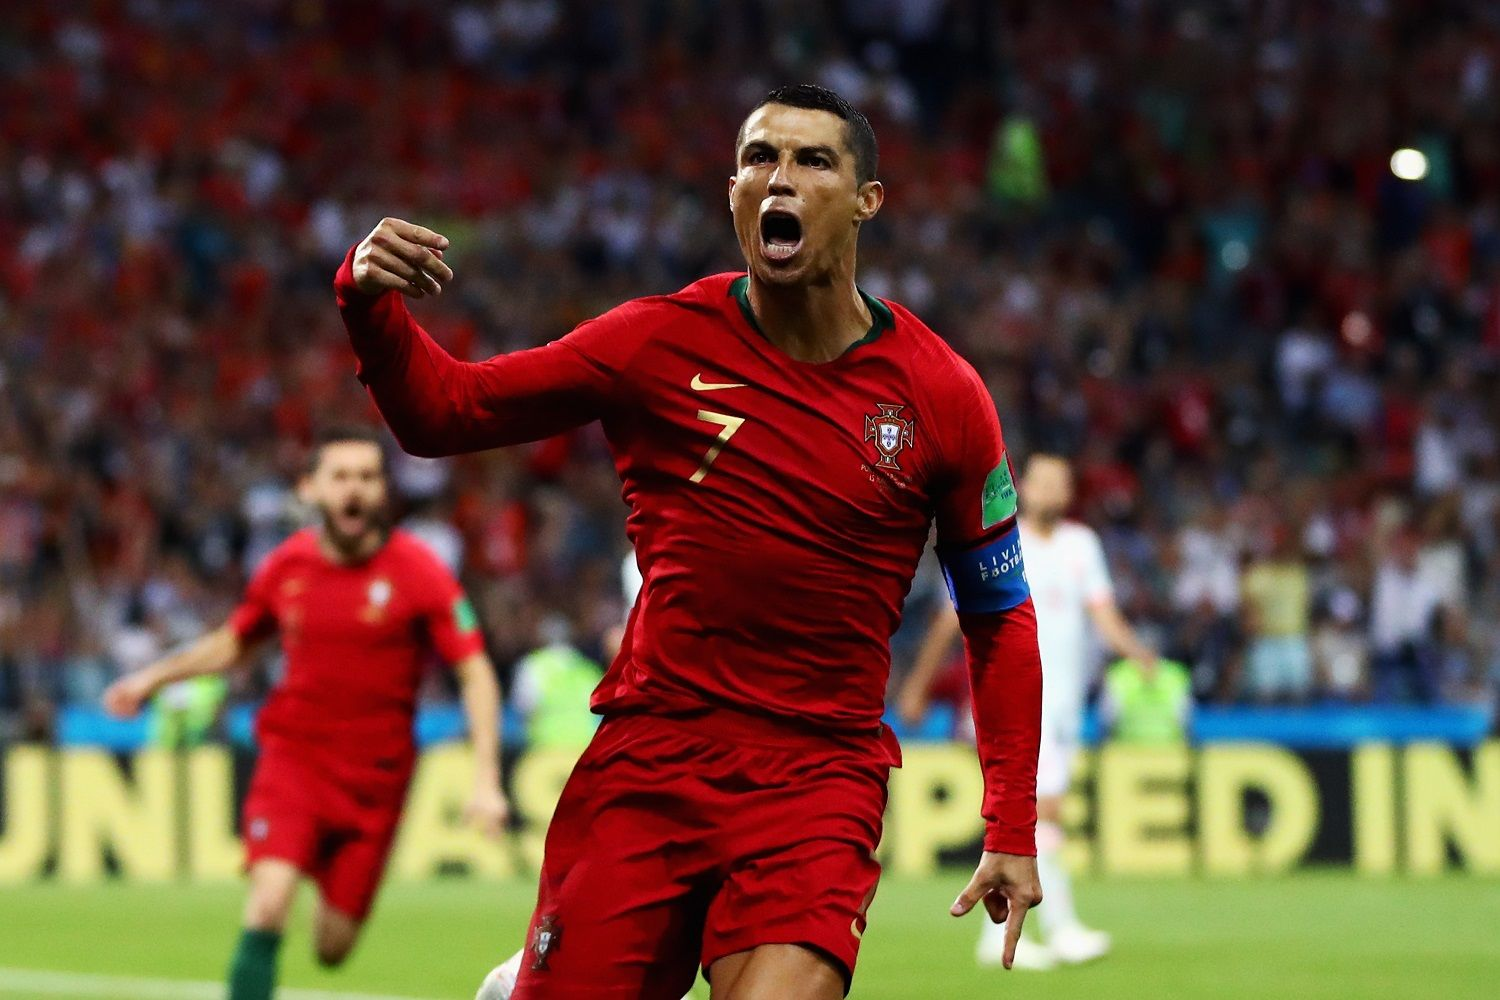 SOCHI, RUSSIA - JUNE 15:  Cristiano Ronaldo of Portugal celebrates after scoring his team's first goal during the 2018 FIFA World Cup Russia group B match between Portugal and Spain at Fisht Stadium on June 15, 2018 in Sochi, Russia.  (Photo by Dean Mouhtaropoulos/Getty Images)